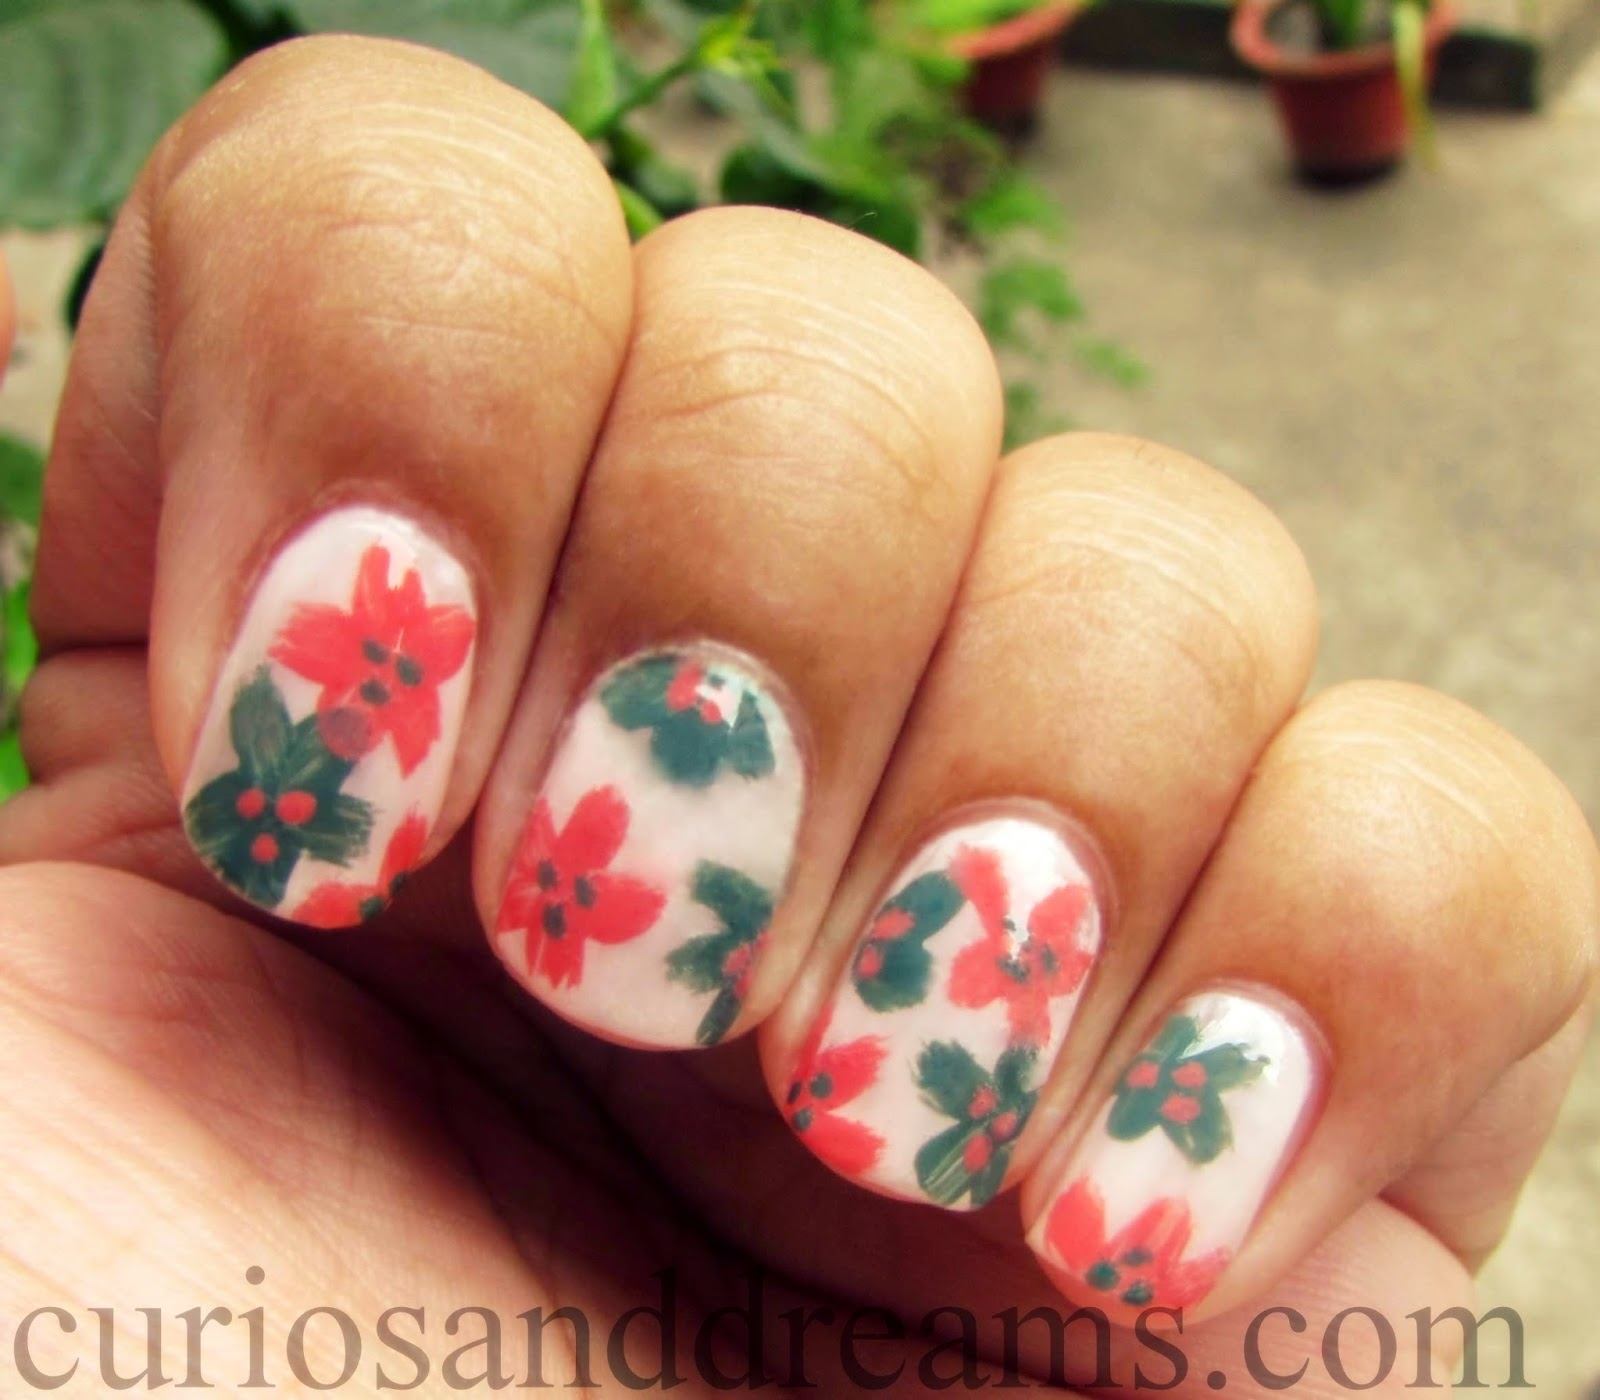 Floral Manicures For Spring And: Makeup And Beauty Product Reviews